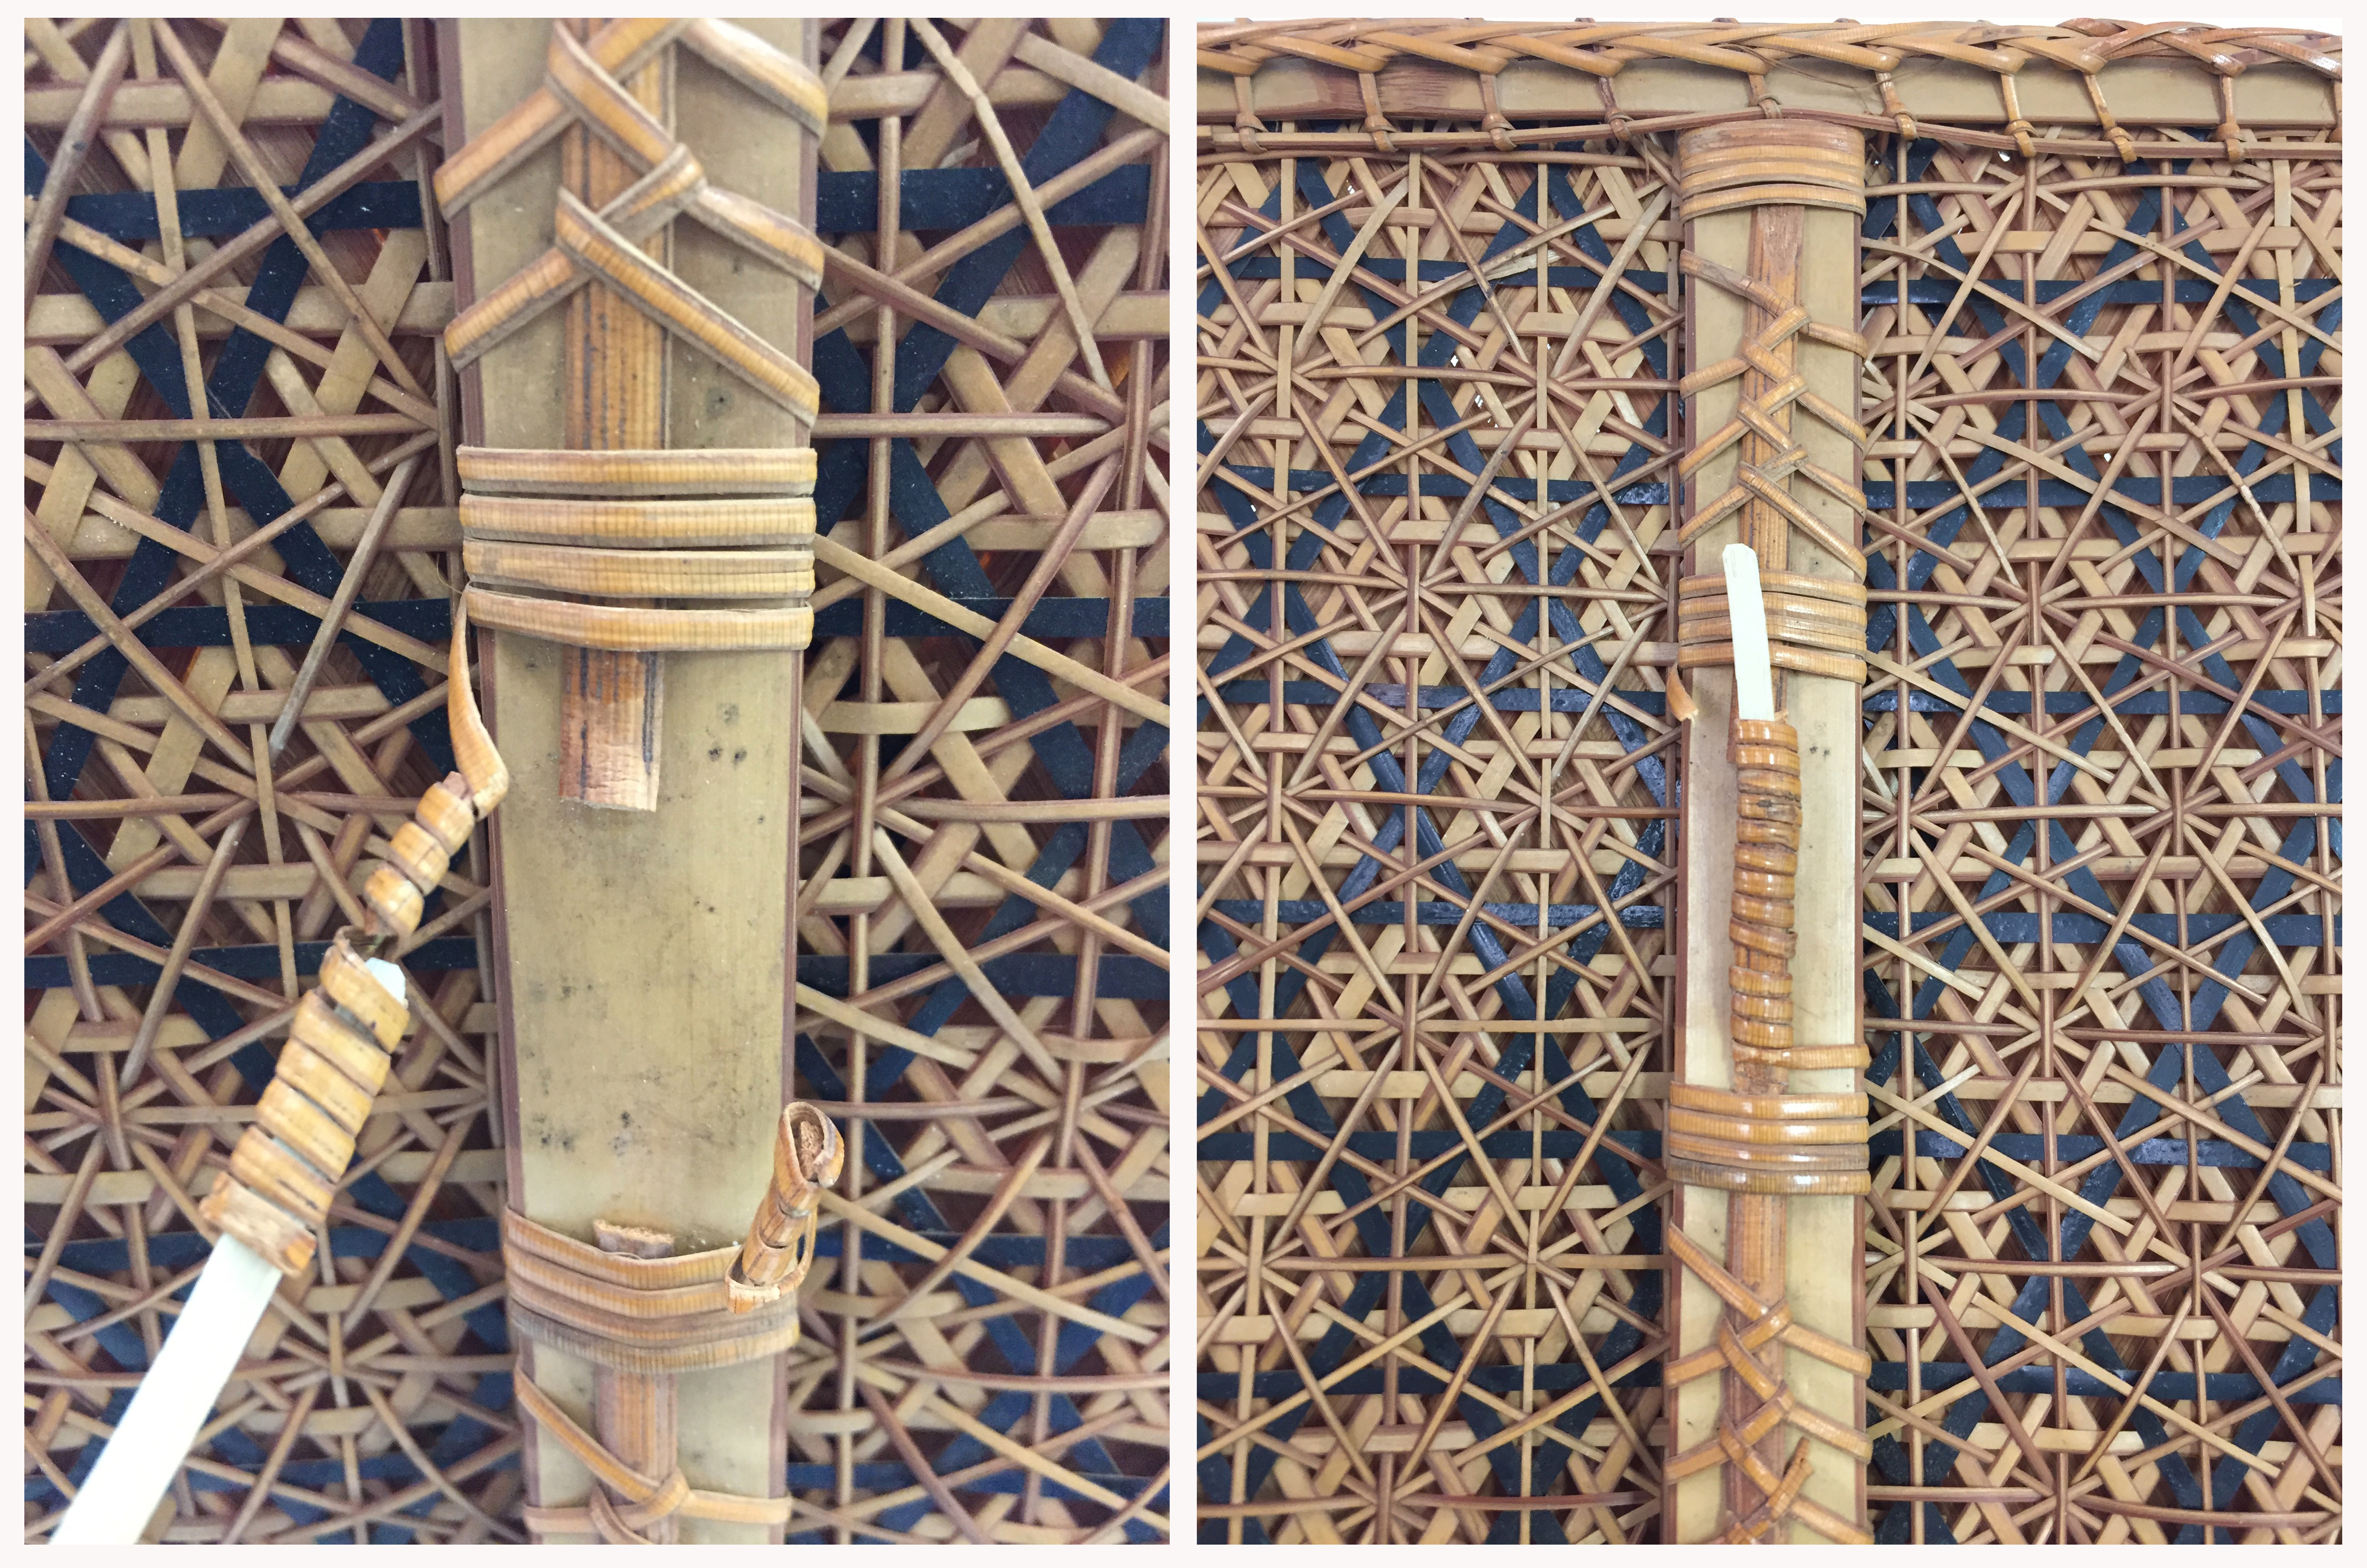 Left: Close-up, broken coil of bamboo on woven hexagonal pattern. Right: repaired and splinted coil of bamboo on woven hexagonal pattern.